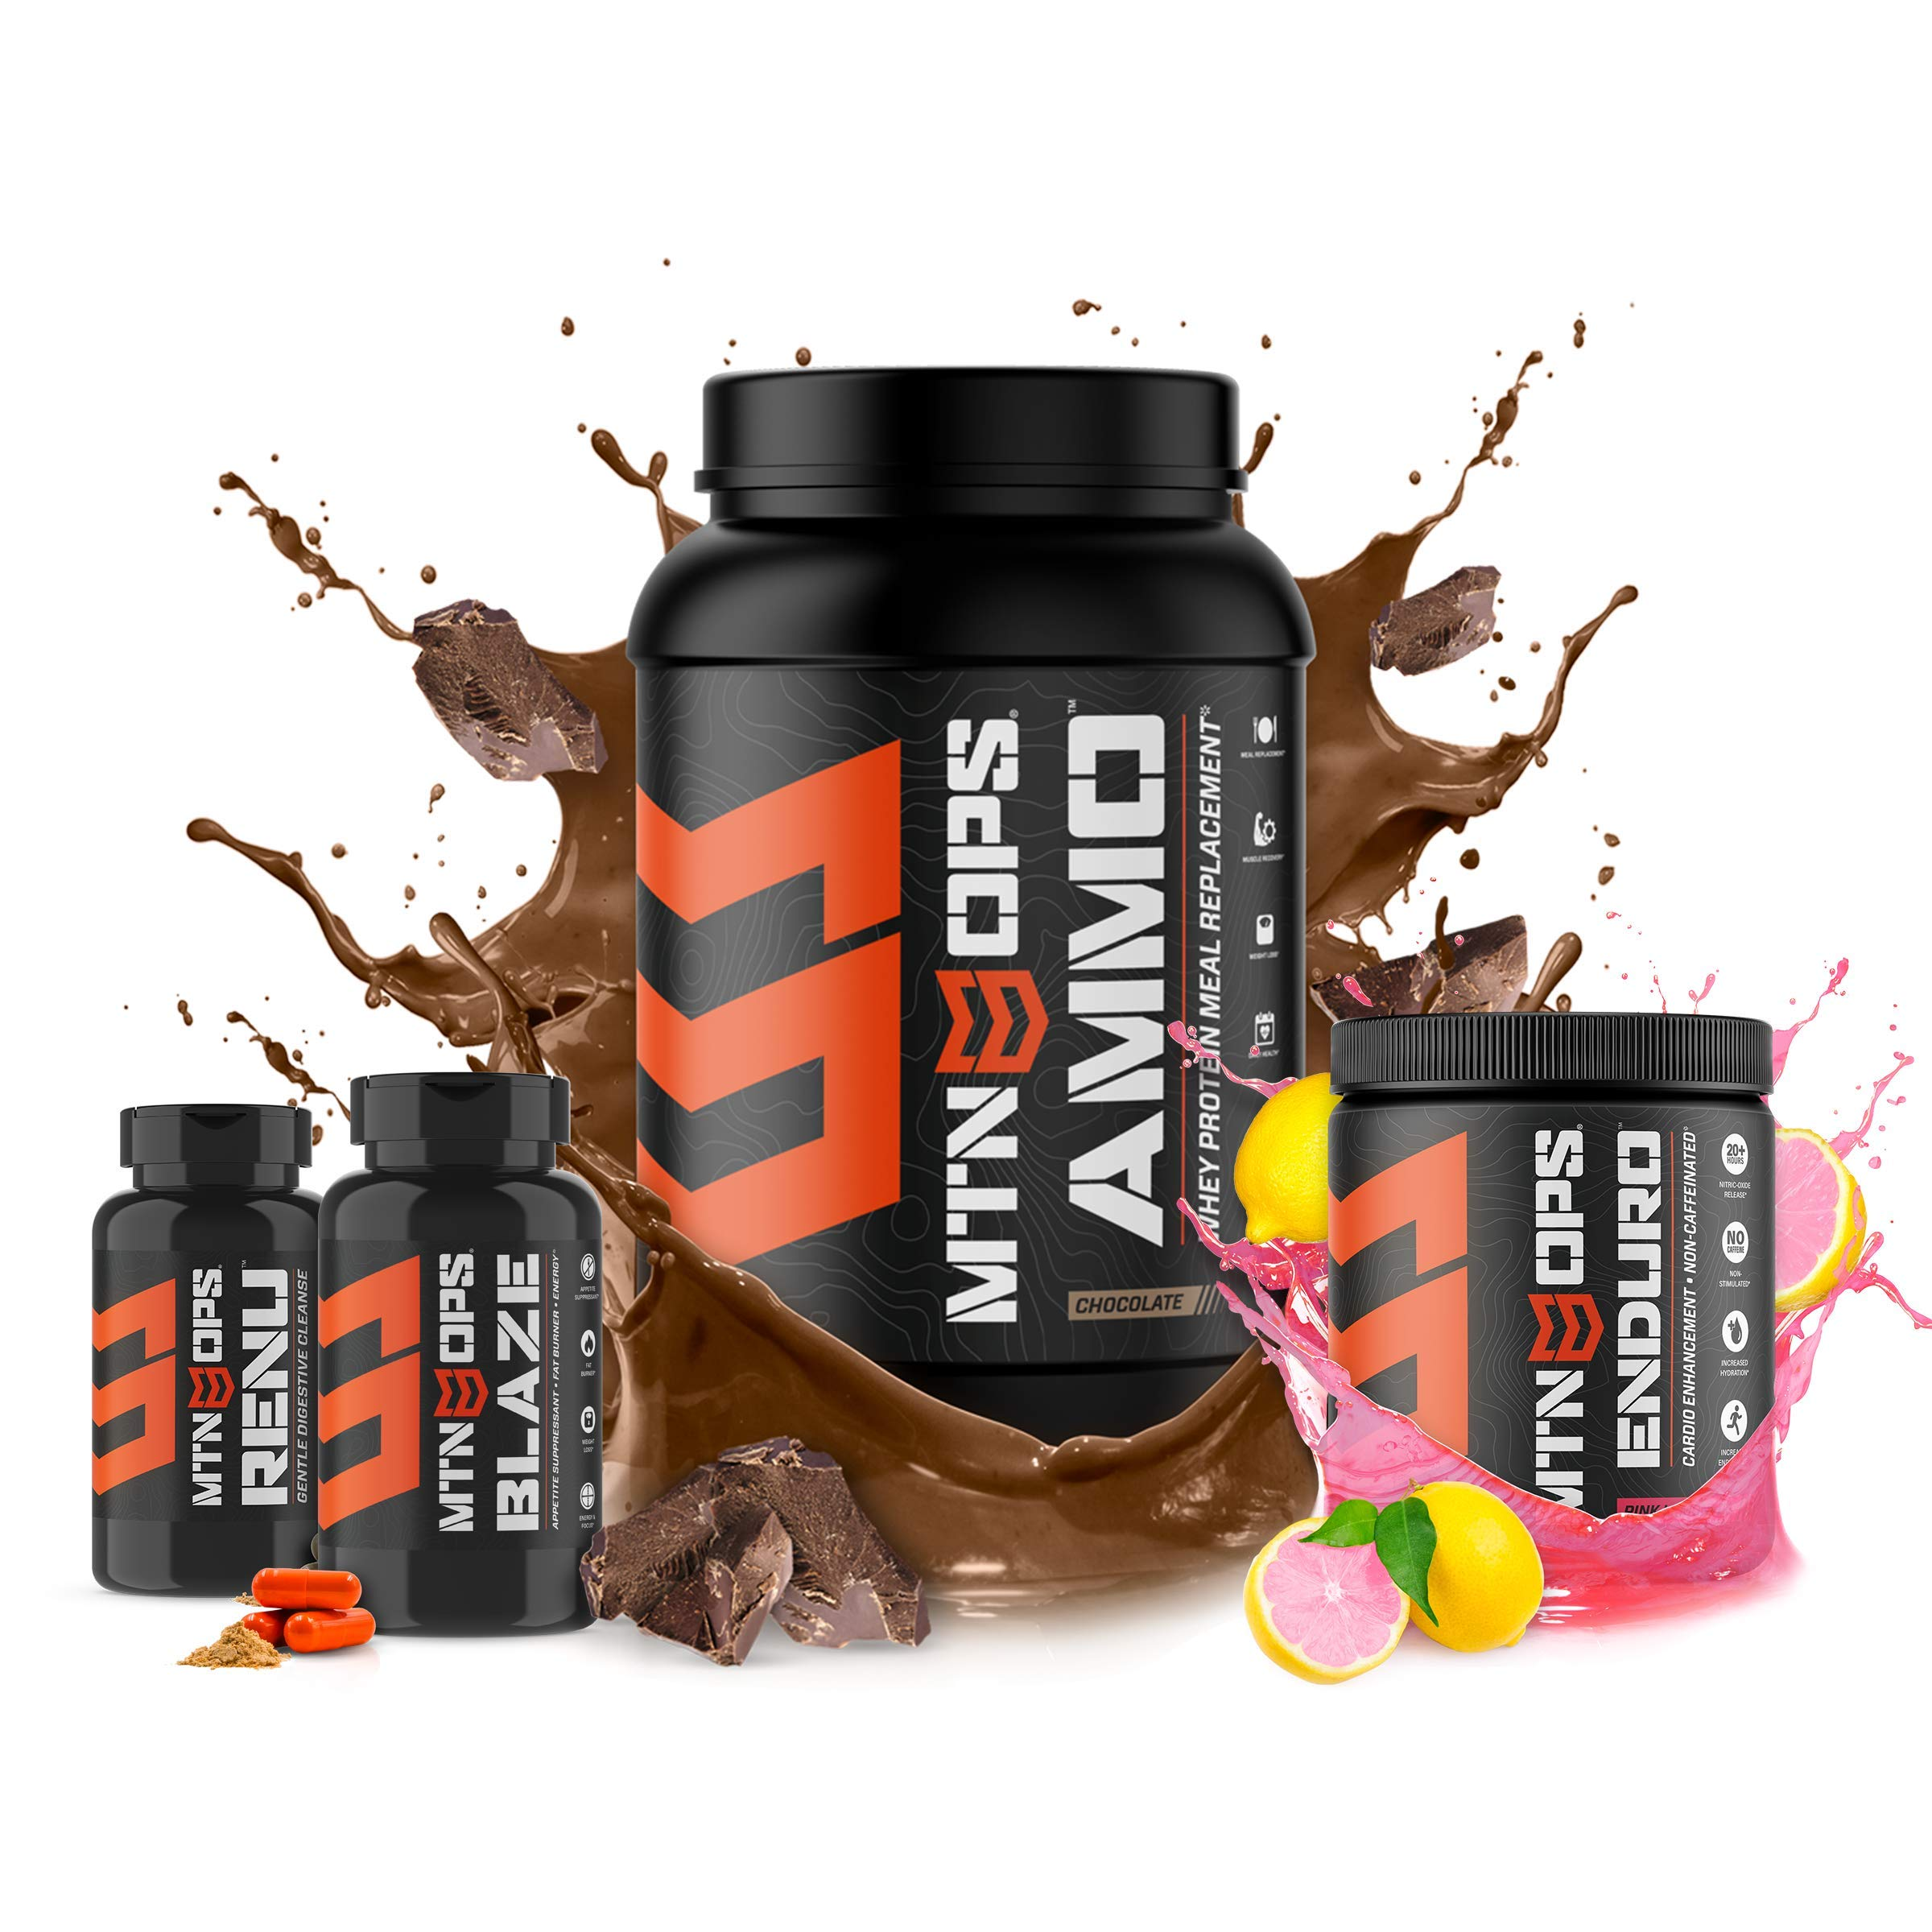 Mtn Ops Conquer Weight Loss Combo - Includes Ammo, Enduro, Blaze Capsules and Renu Capsules, Varied, 4 Count by MTN OPS